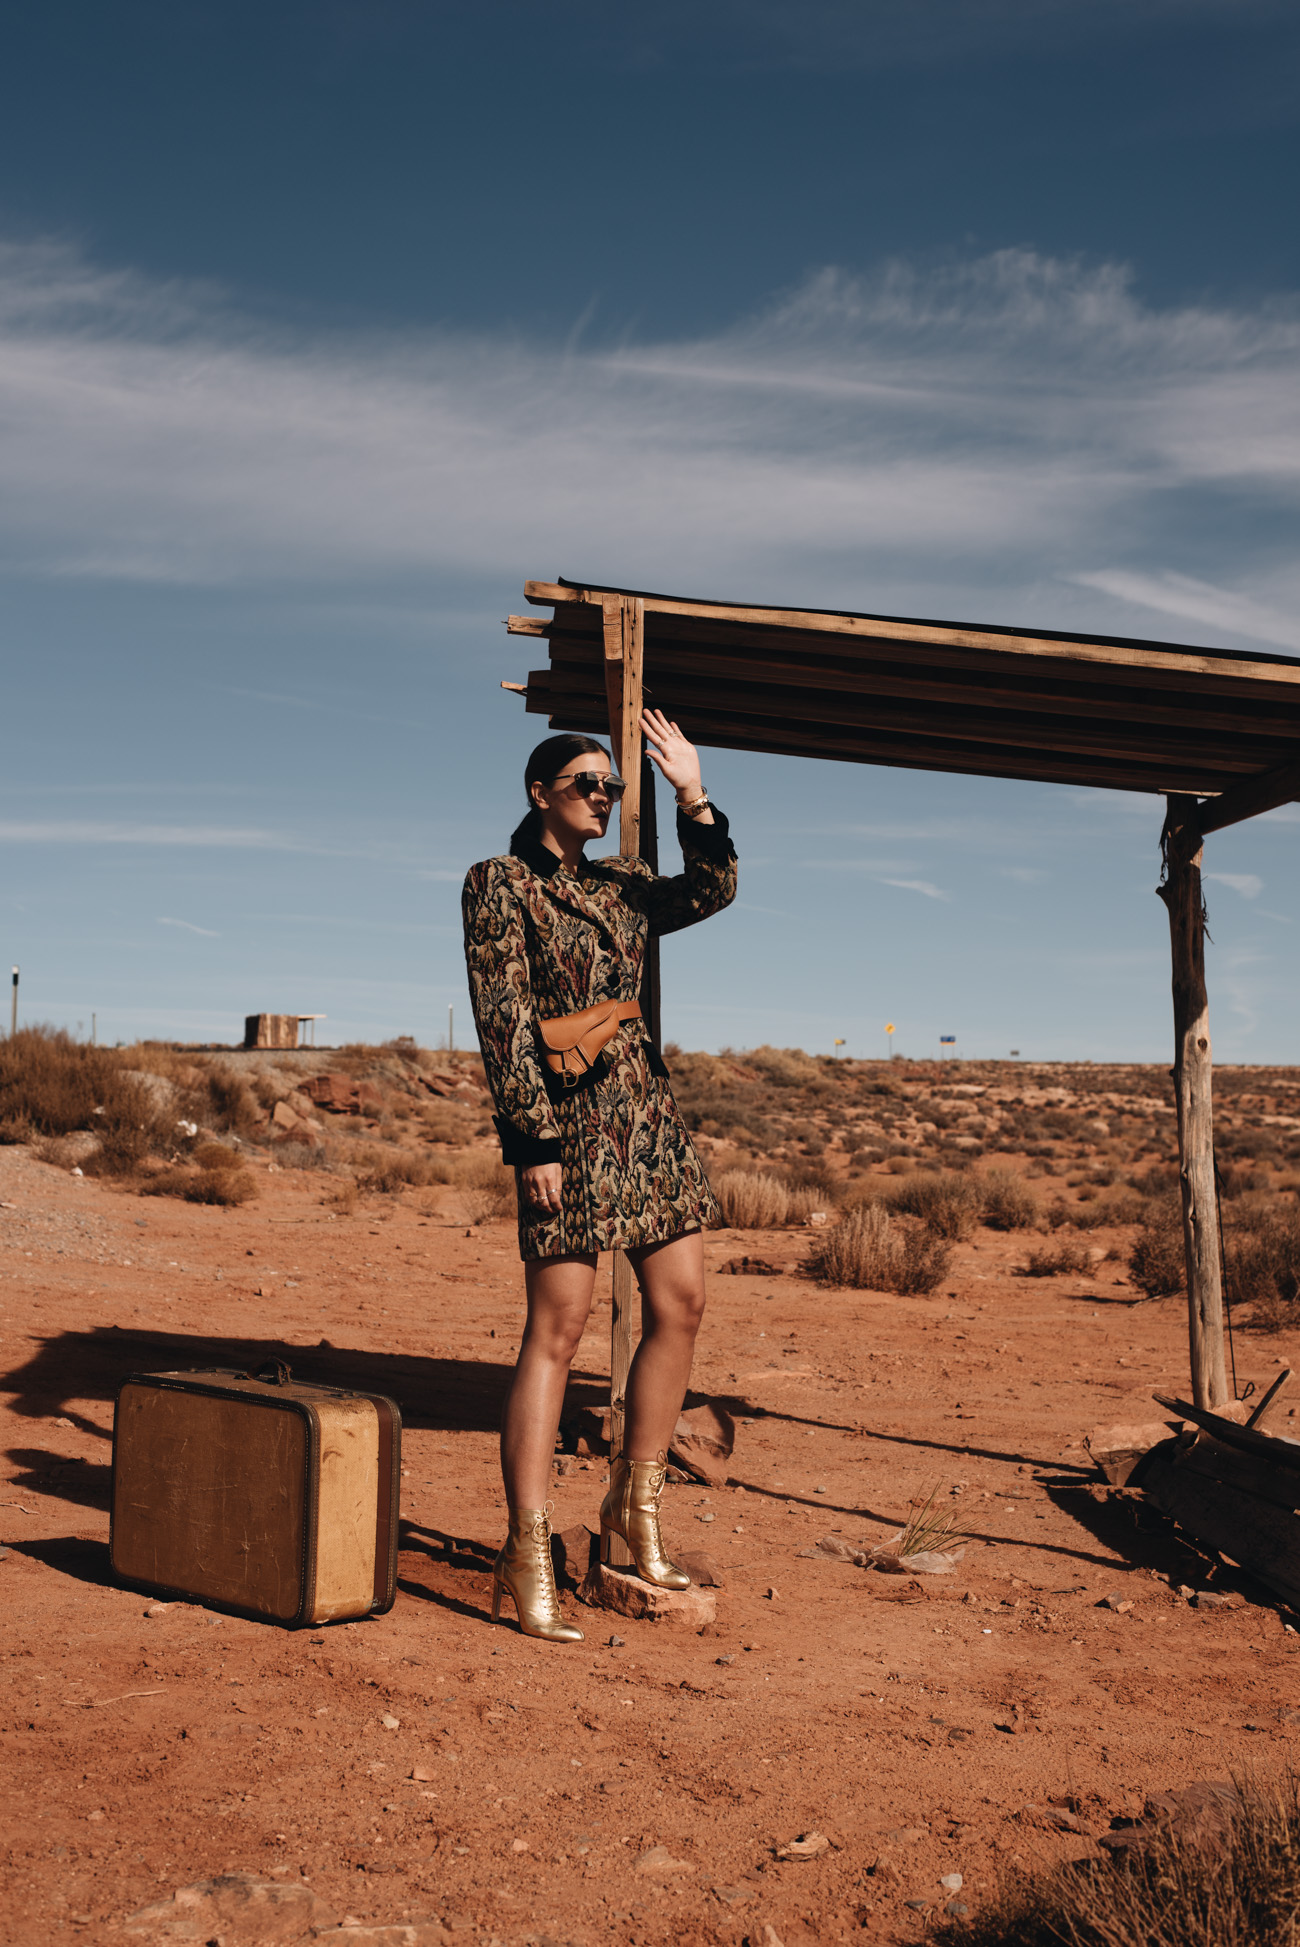 Monument-Valley-Fashion-Shooting-Editorial-Road-Trip-Highway-Mode-bloggerin-fashionblogger-Nina-schwichtenberg-fashiioncarpet